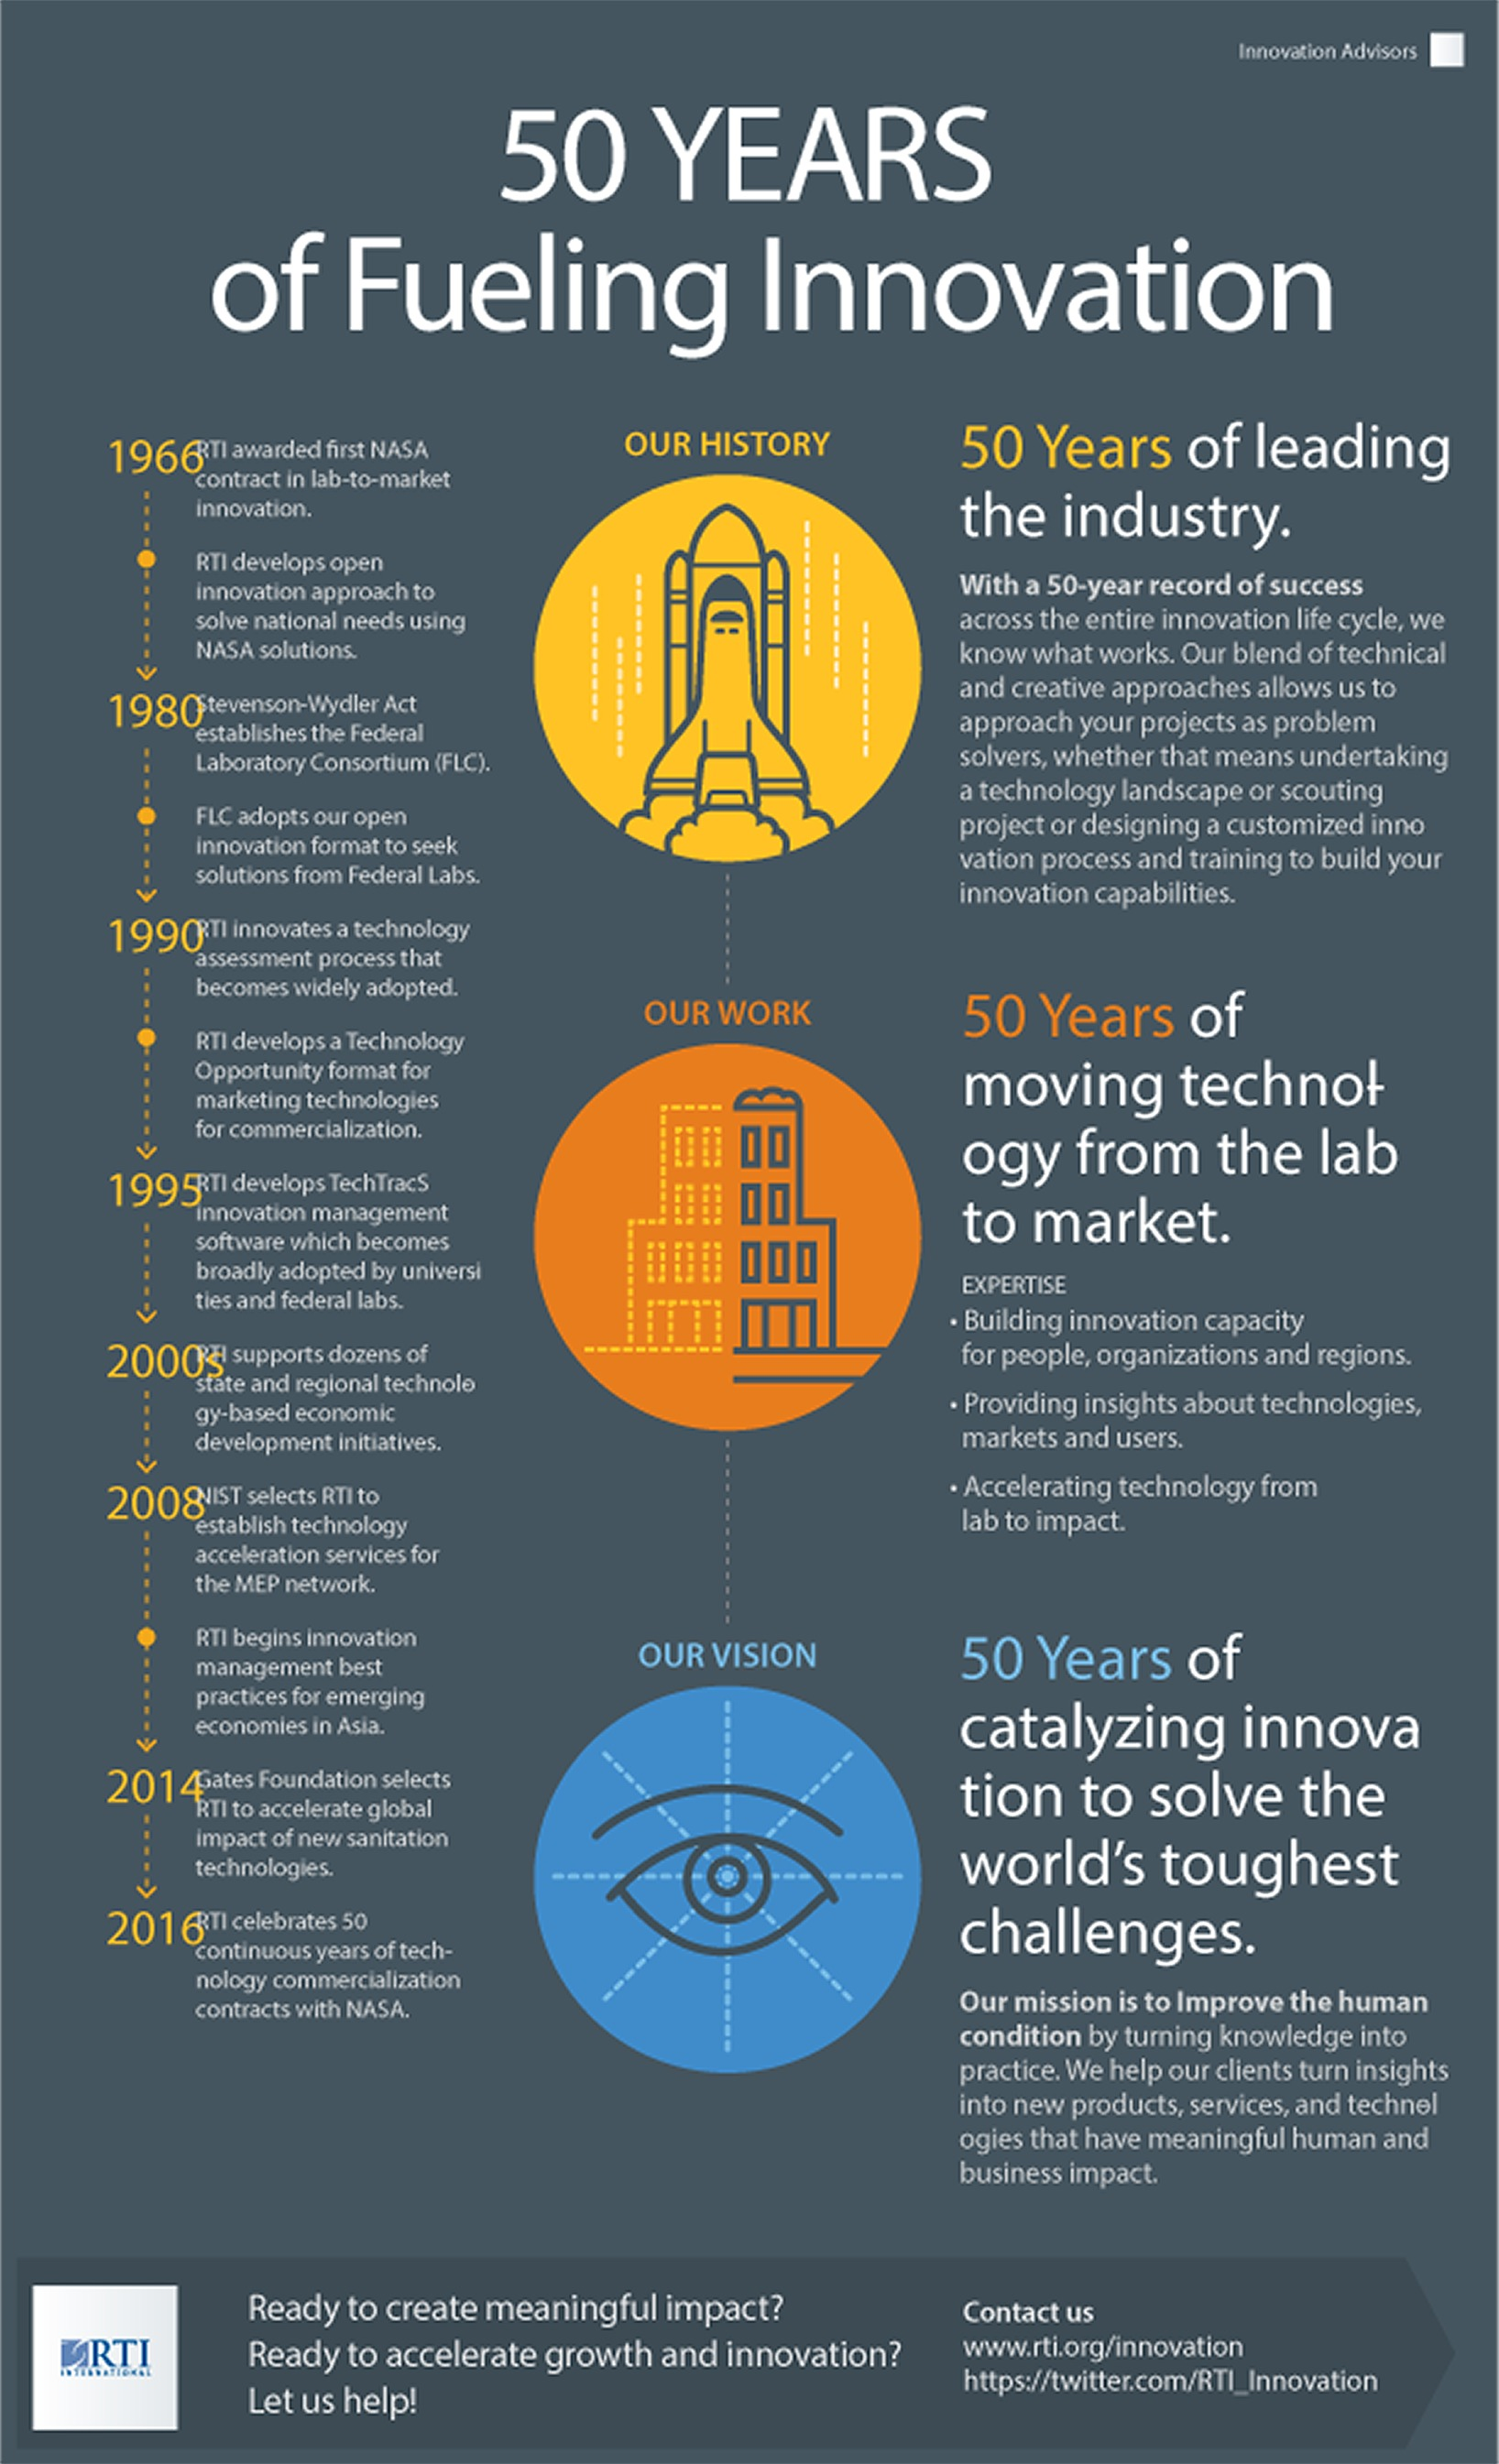 50 Years Fueling Innovation